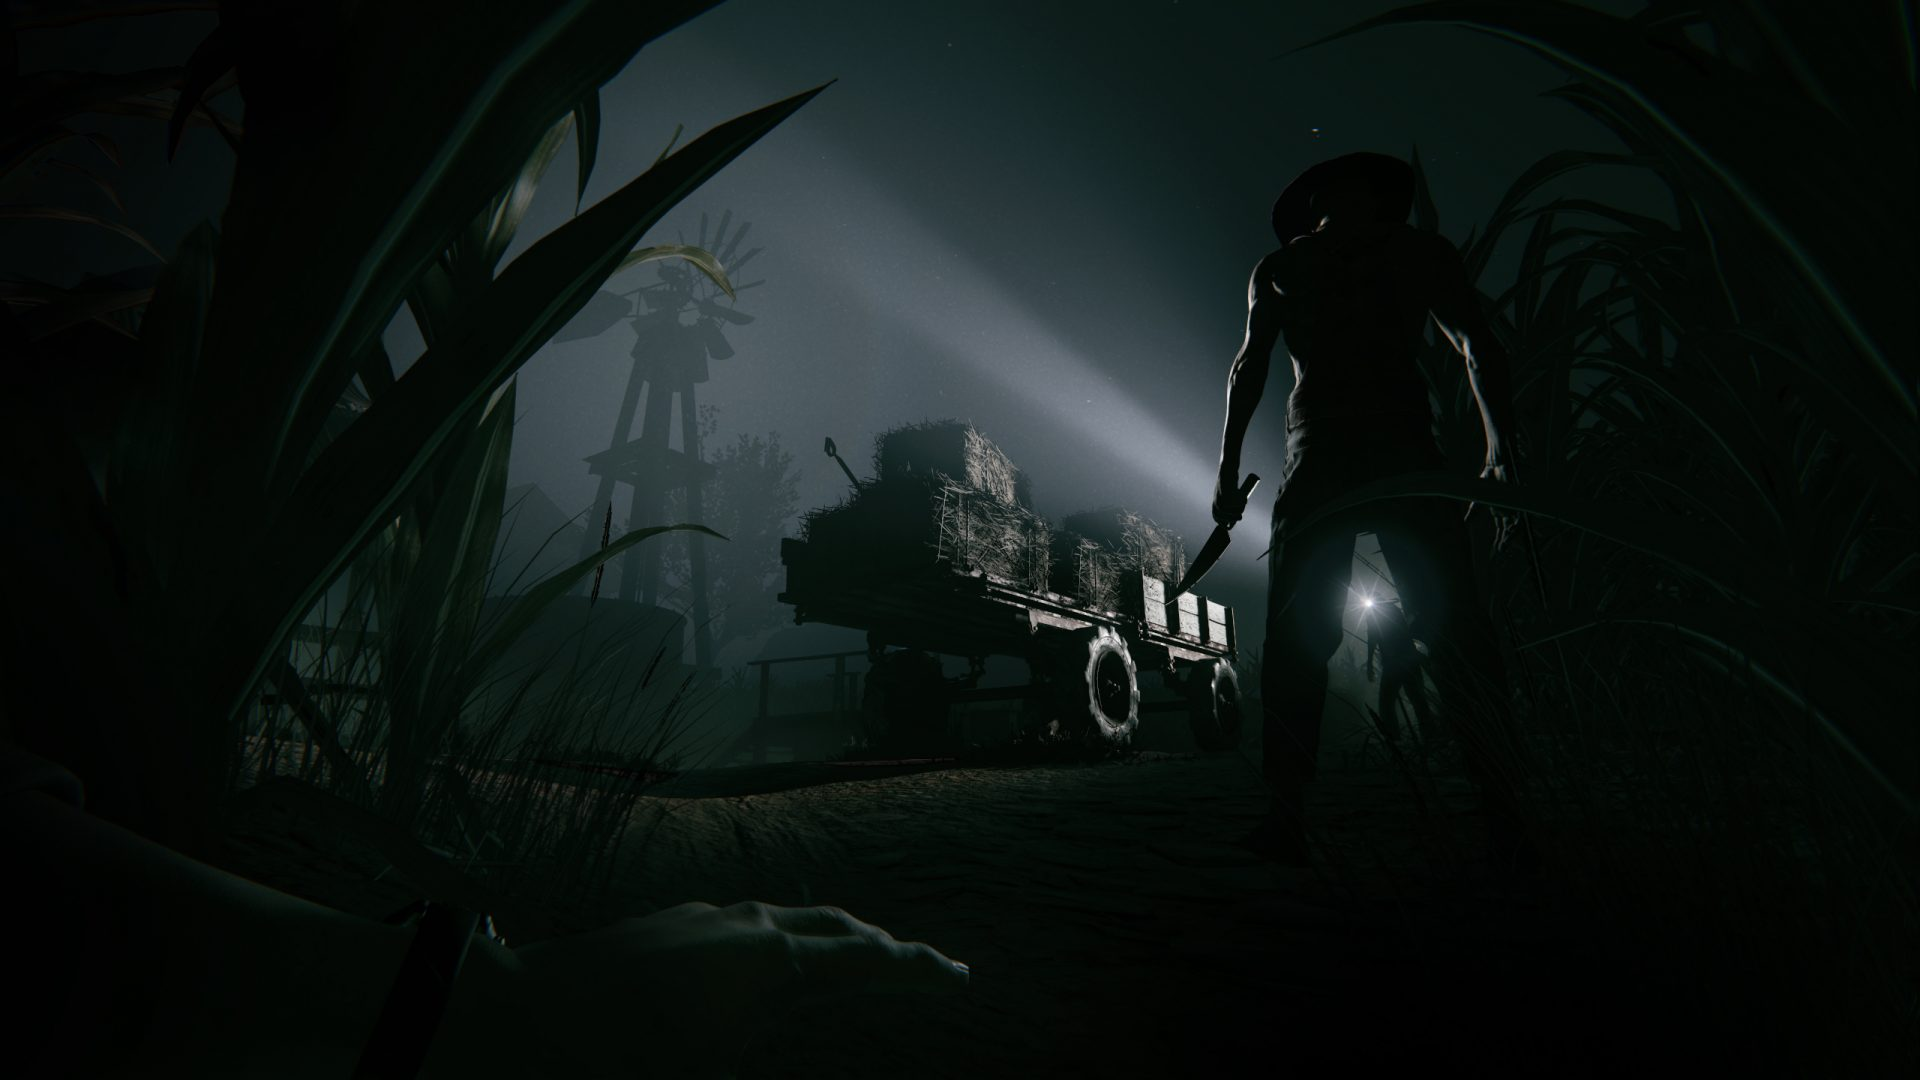 Horror Games For Xbox 1 : Play free demo of horror game outlast 2 on xbox one and pc